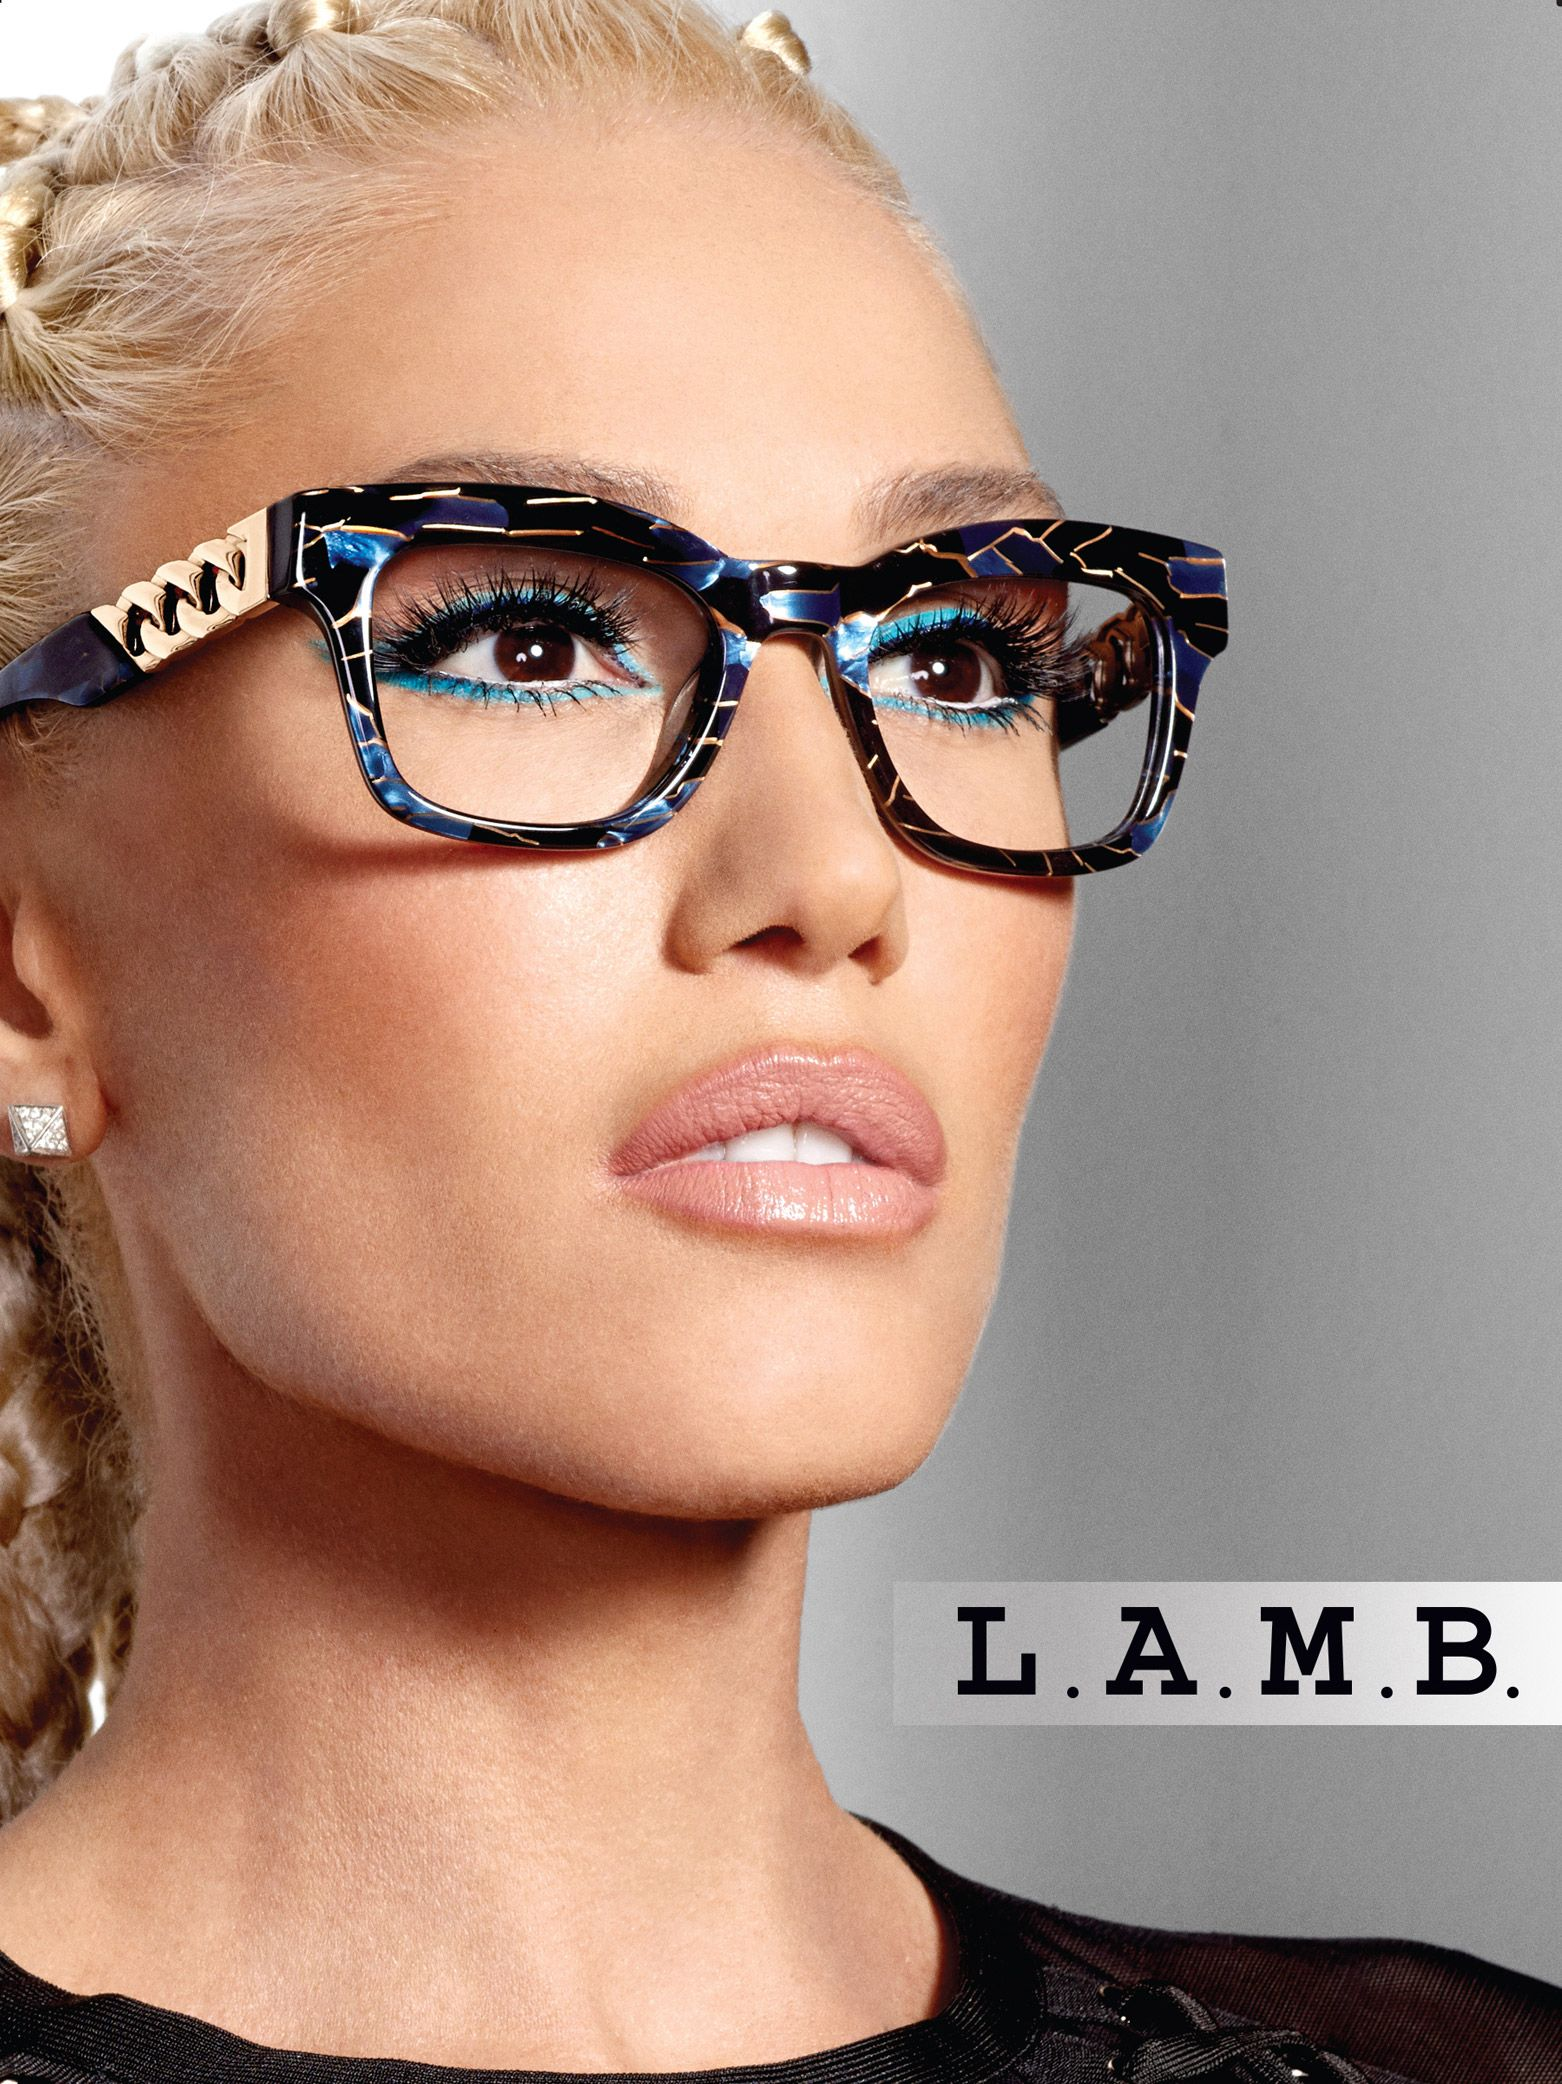 a4b3ed7252 Gwen Stefani s Glasses-Wearing Son Zuma Inspired Her New Eyewear  Collection   He s So Proud!